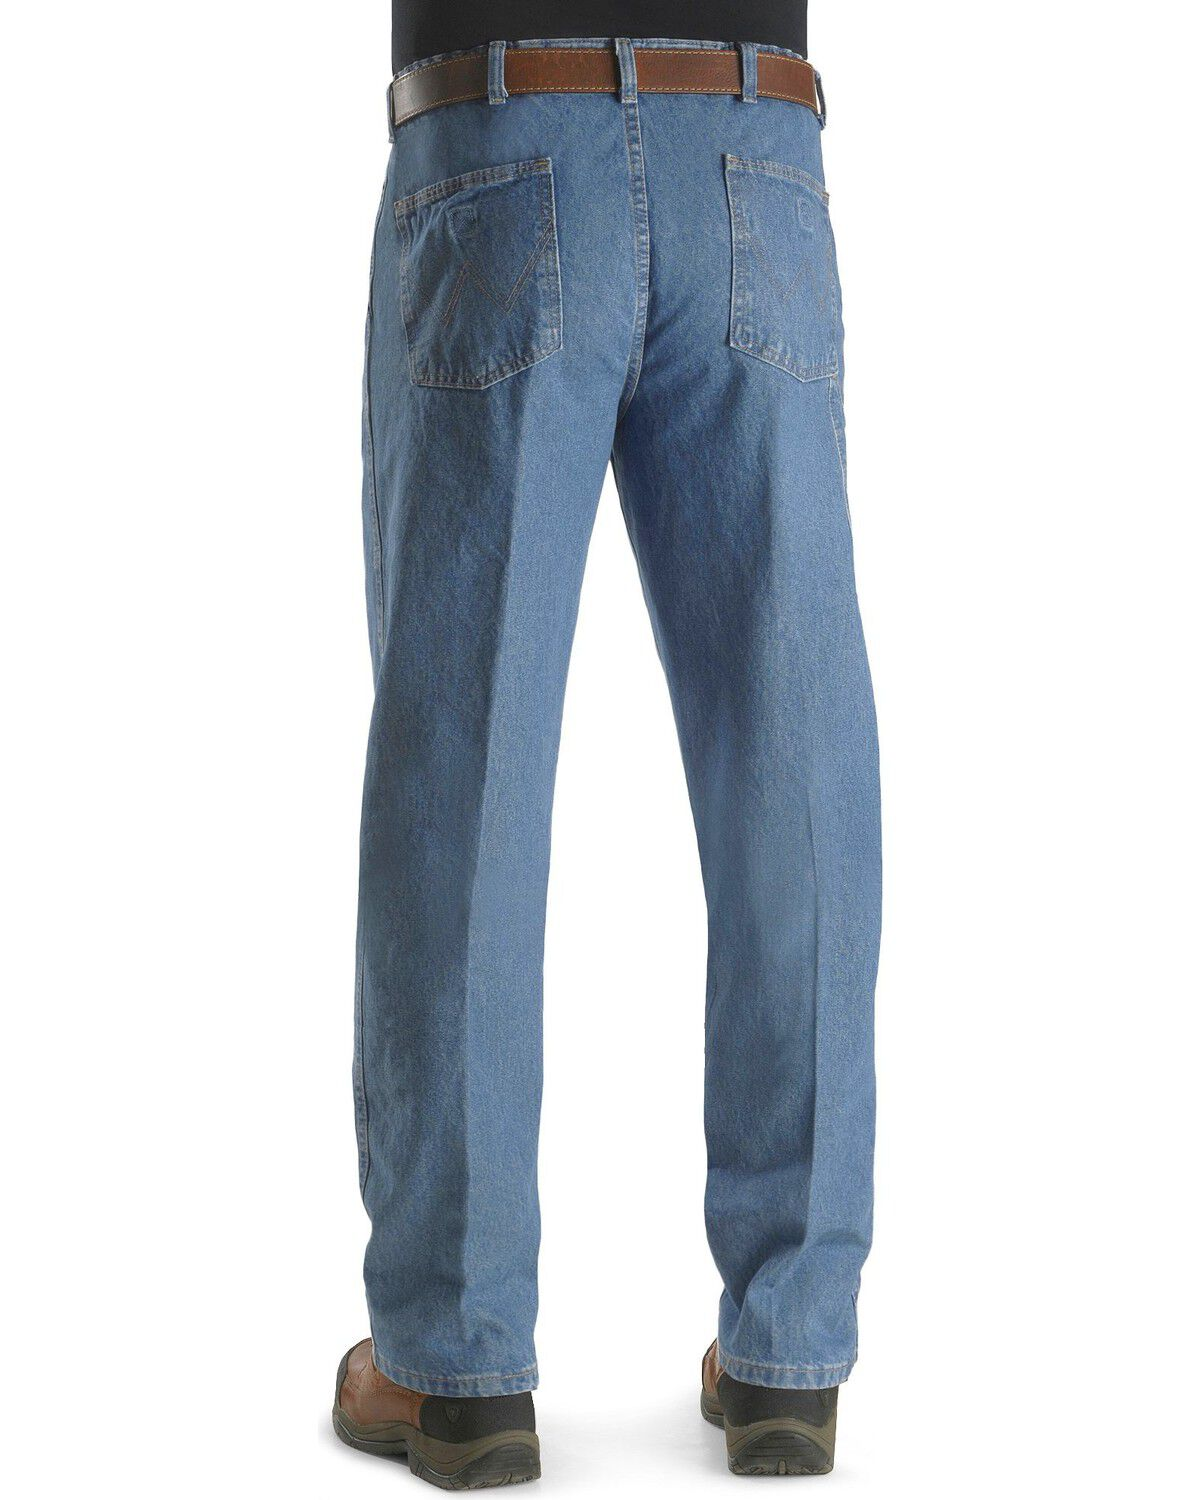 Wrangler Rugged Wear Menu0027s Angler Jeans, Indigo, Hi Res